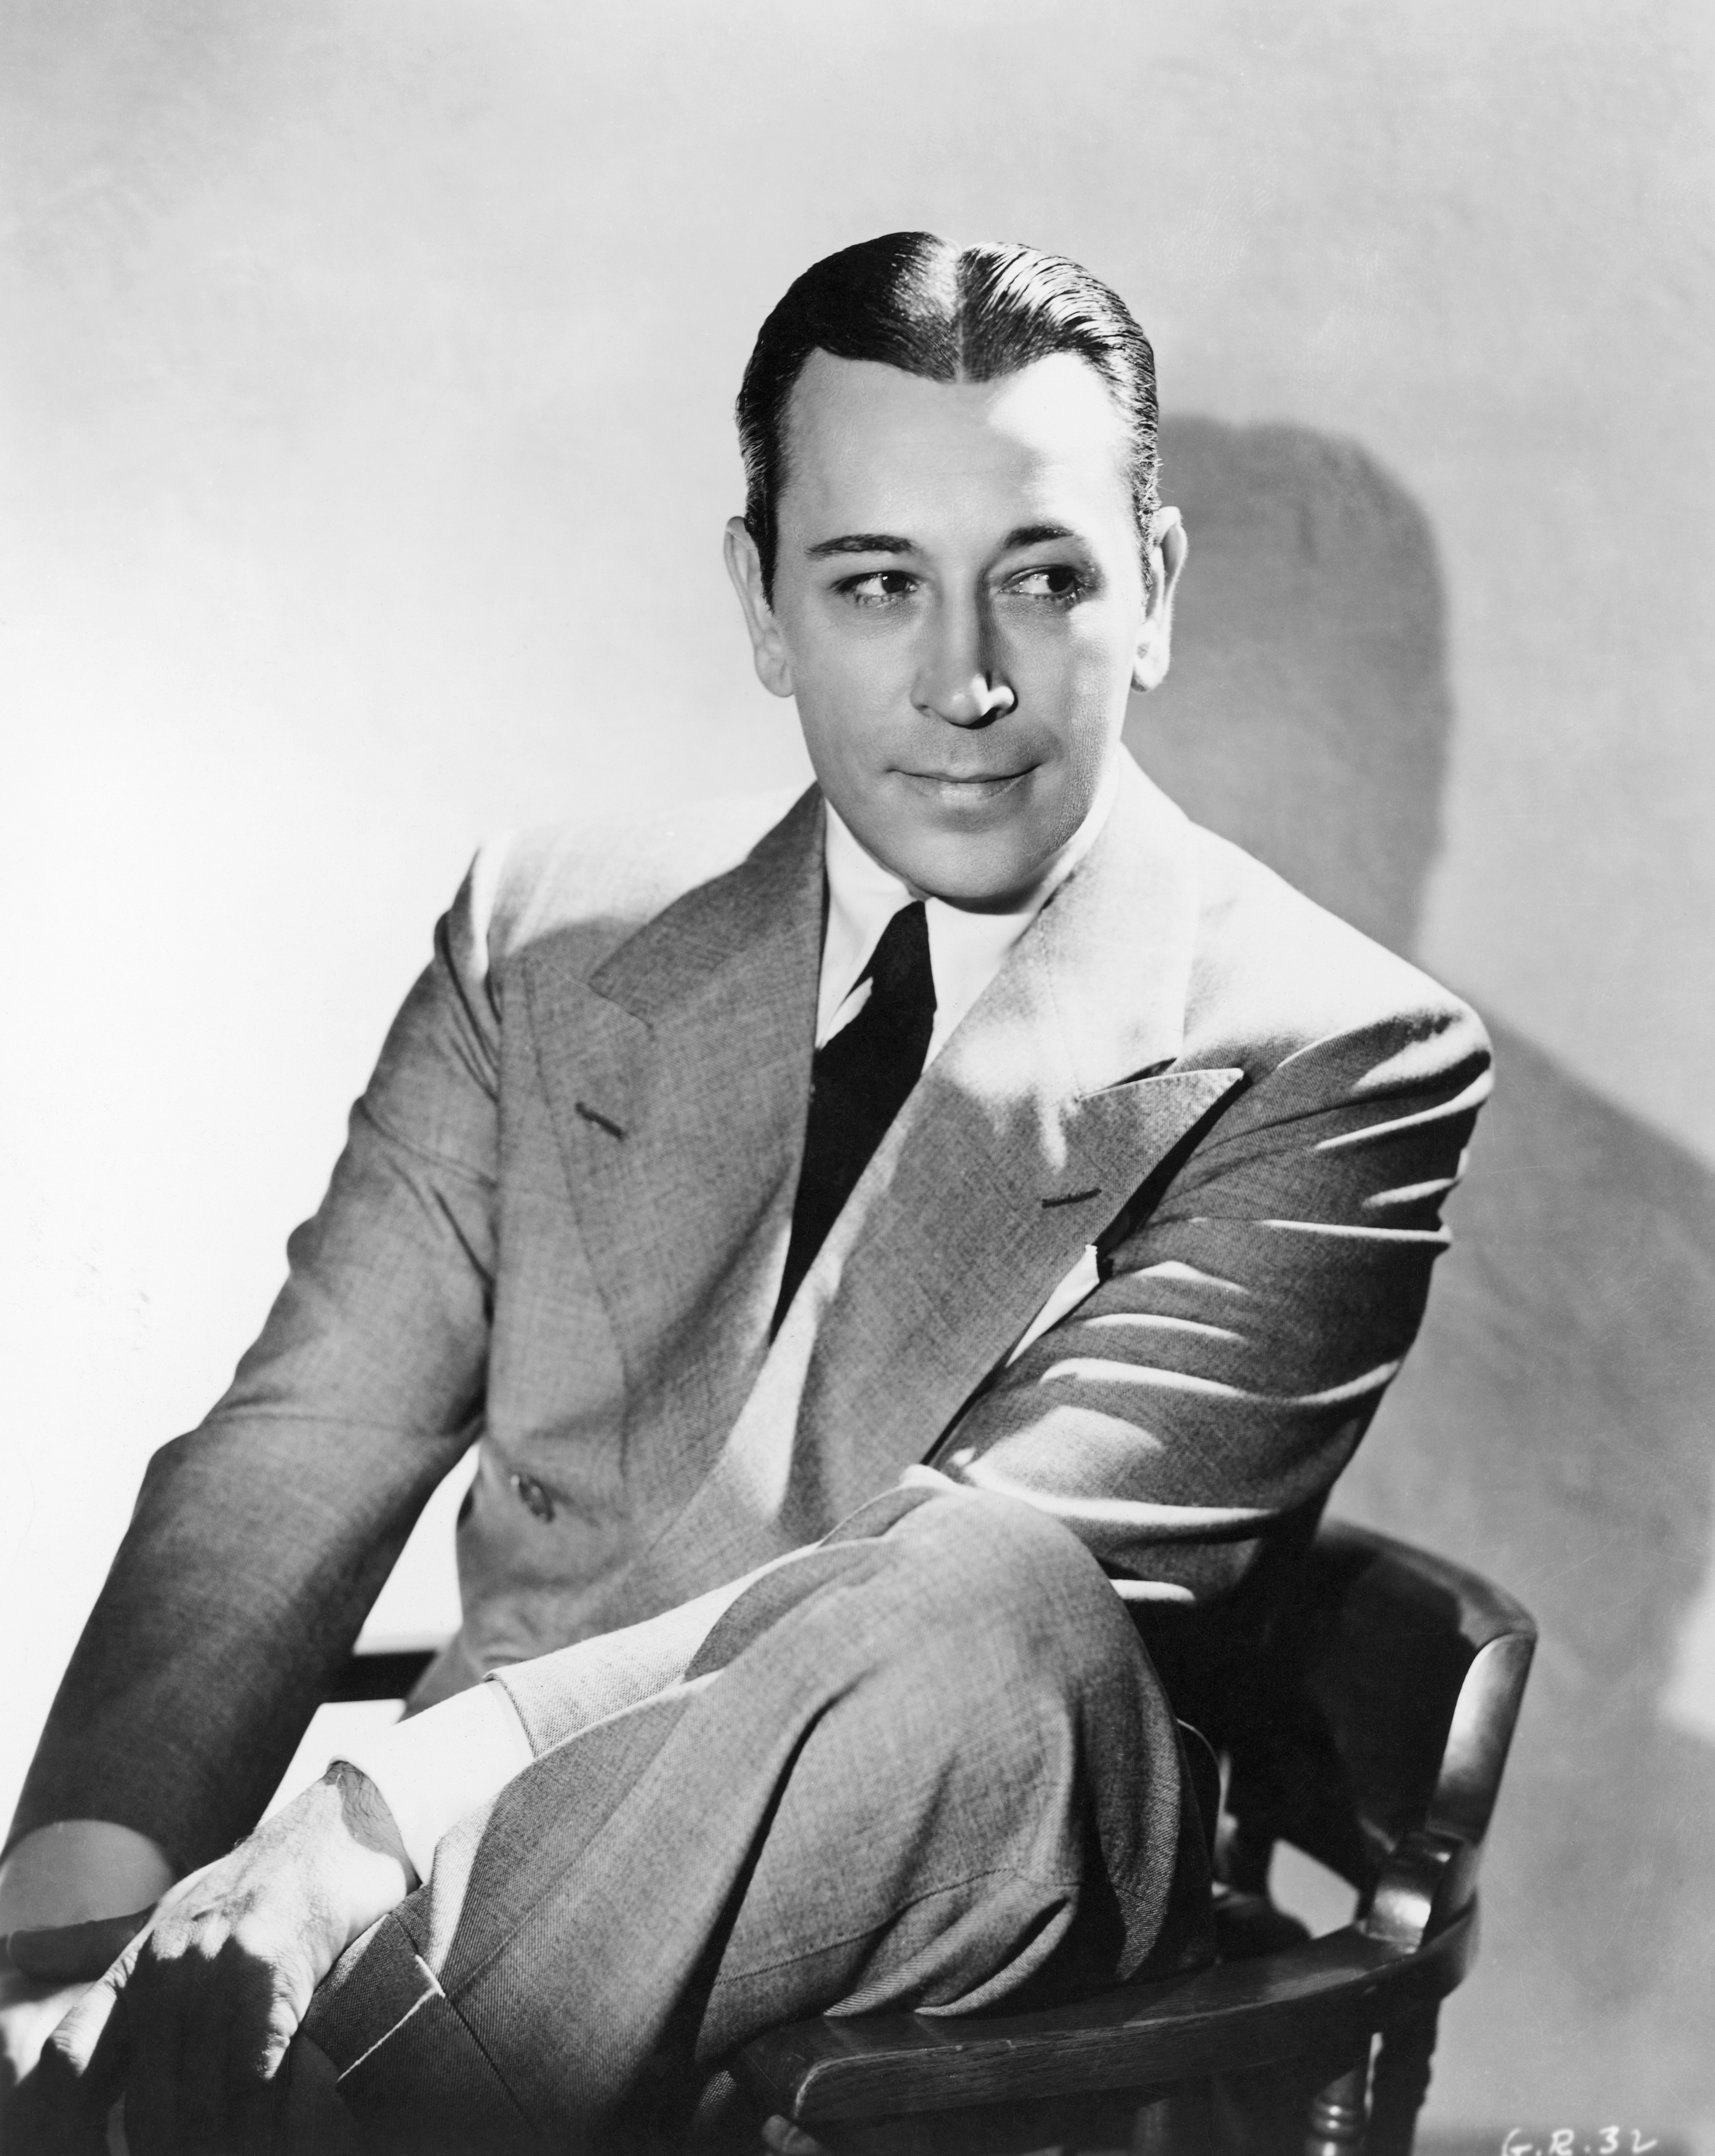 George Raft in black and white